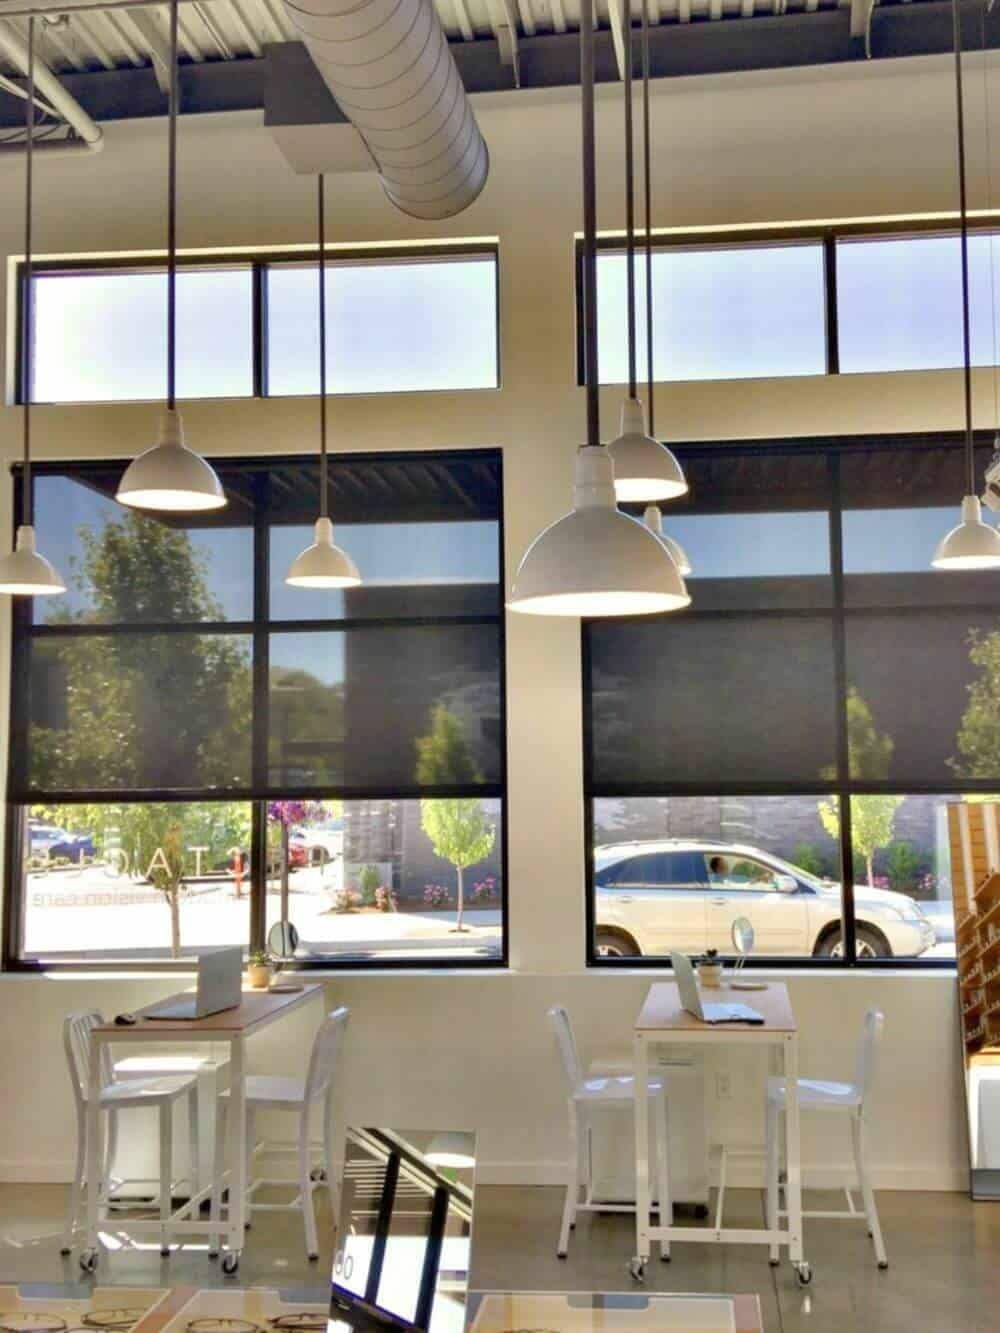 A dine-in area of the restaurant featuring multiple table sets and a tall ceiling with several pendant lights. There are glass windows as well with solar window shades.